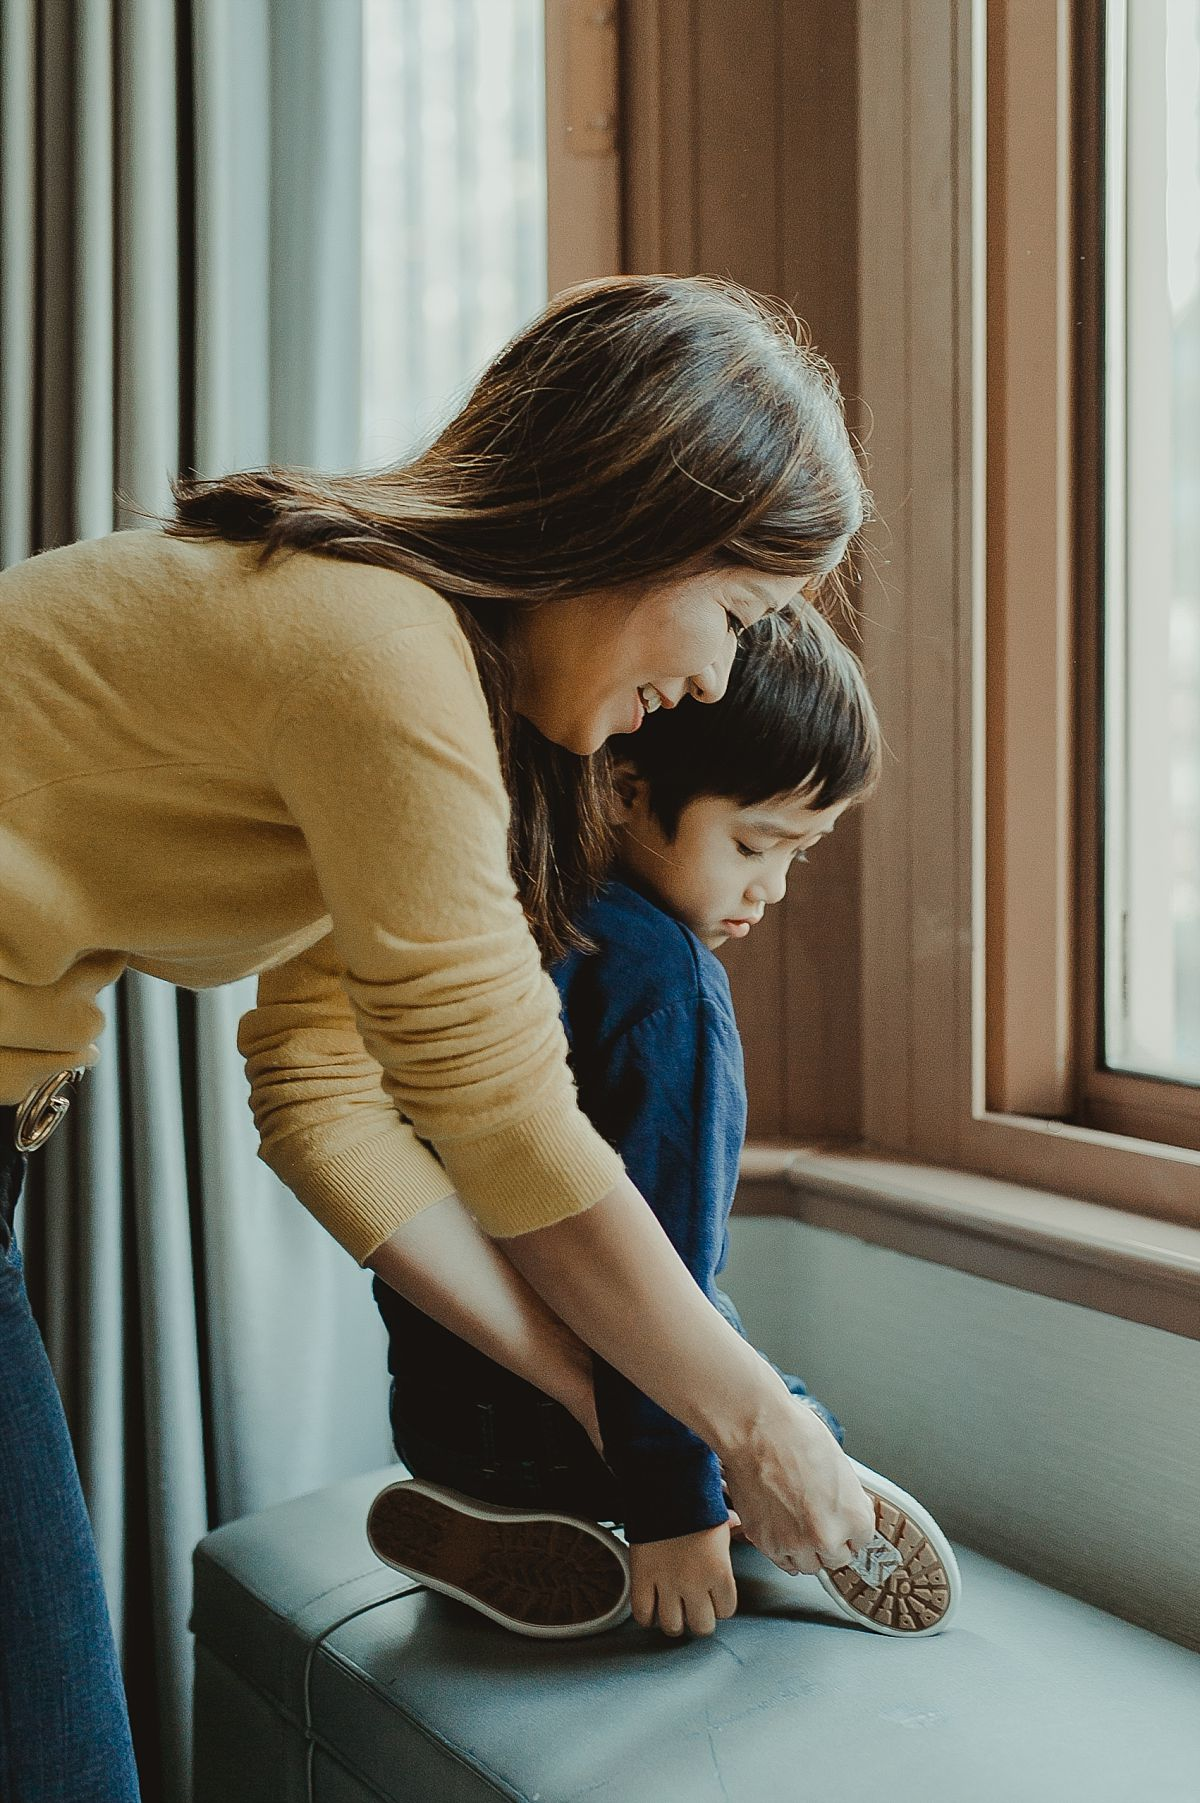 mom helping three year old son put on sneakers while looking out window of manhattan hotel. photograph by nyc family photographer krystil mcdowall